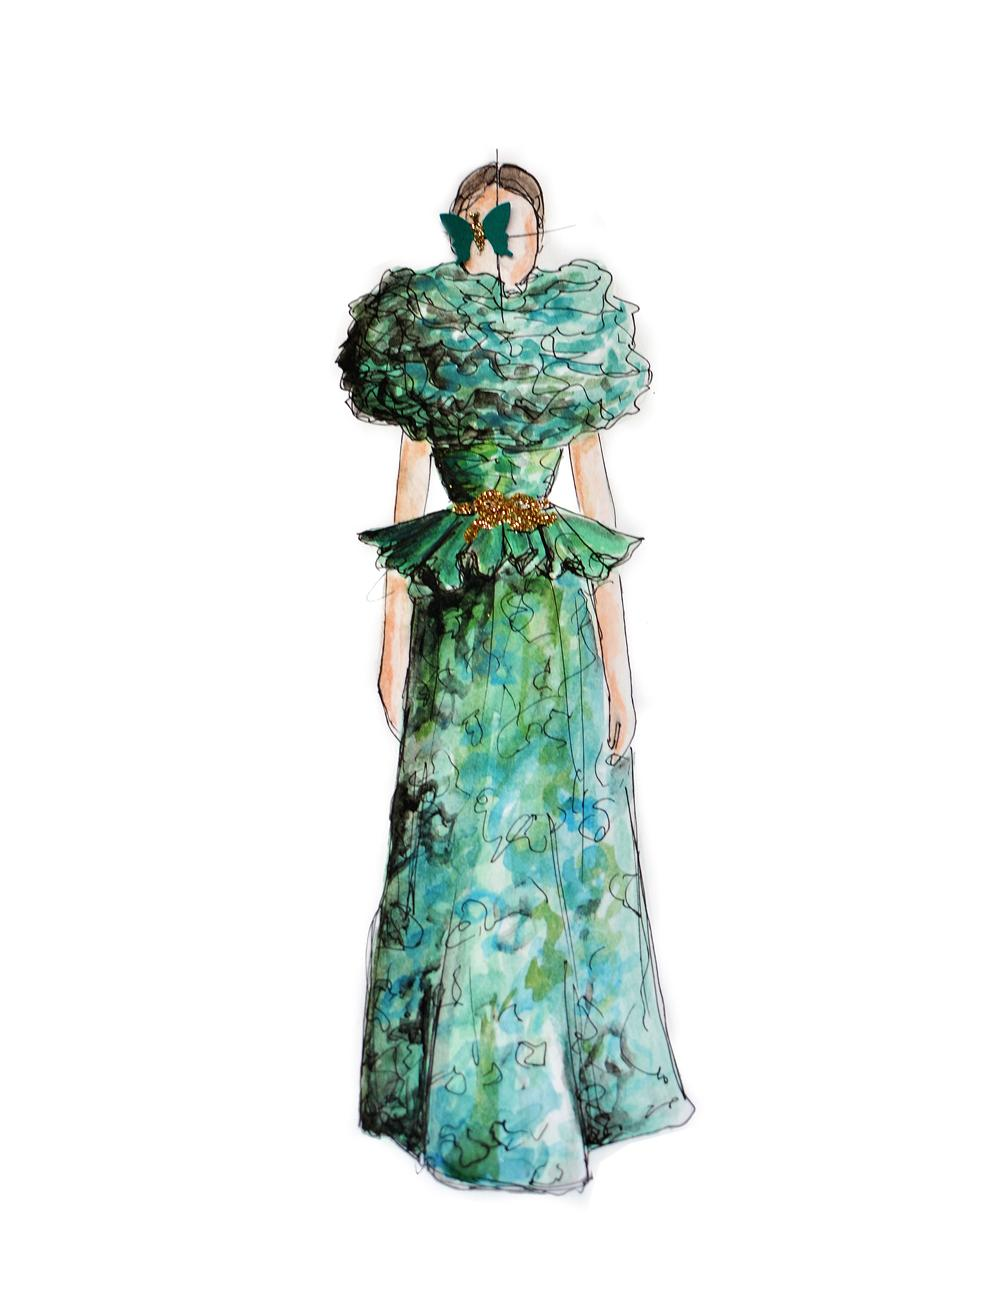 SS14 Inspiration - image 6 - student project